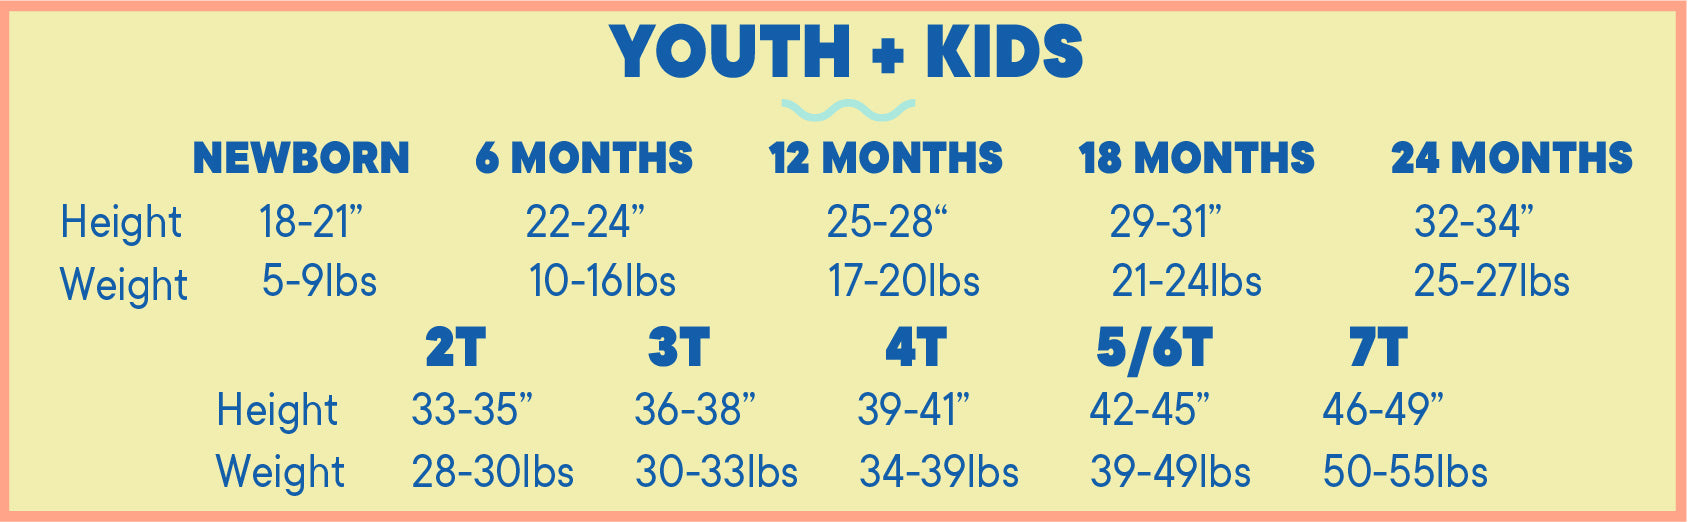 Youth + Kids